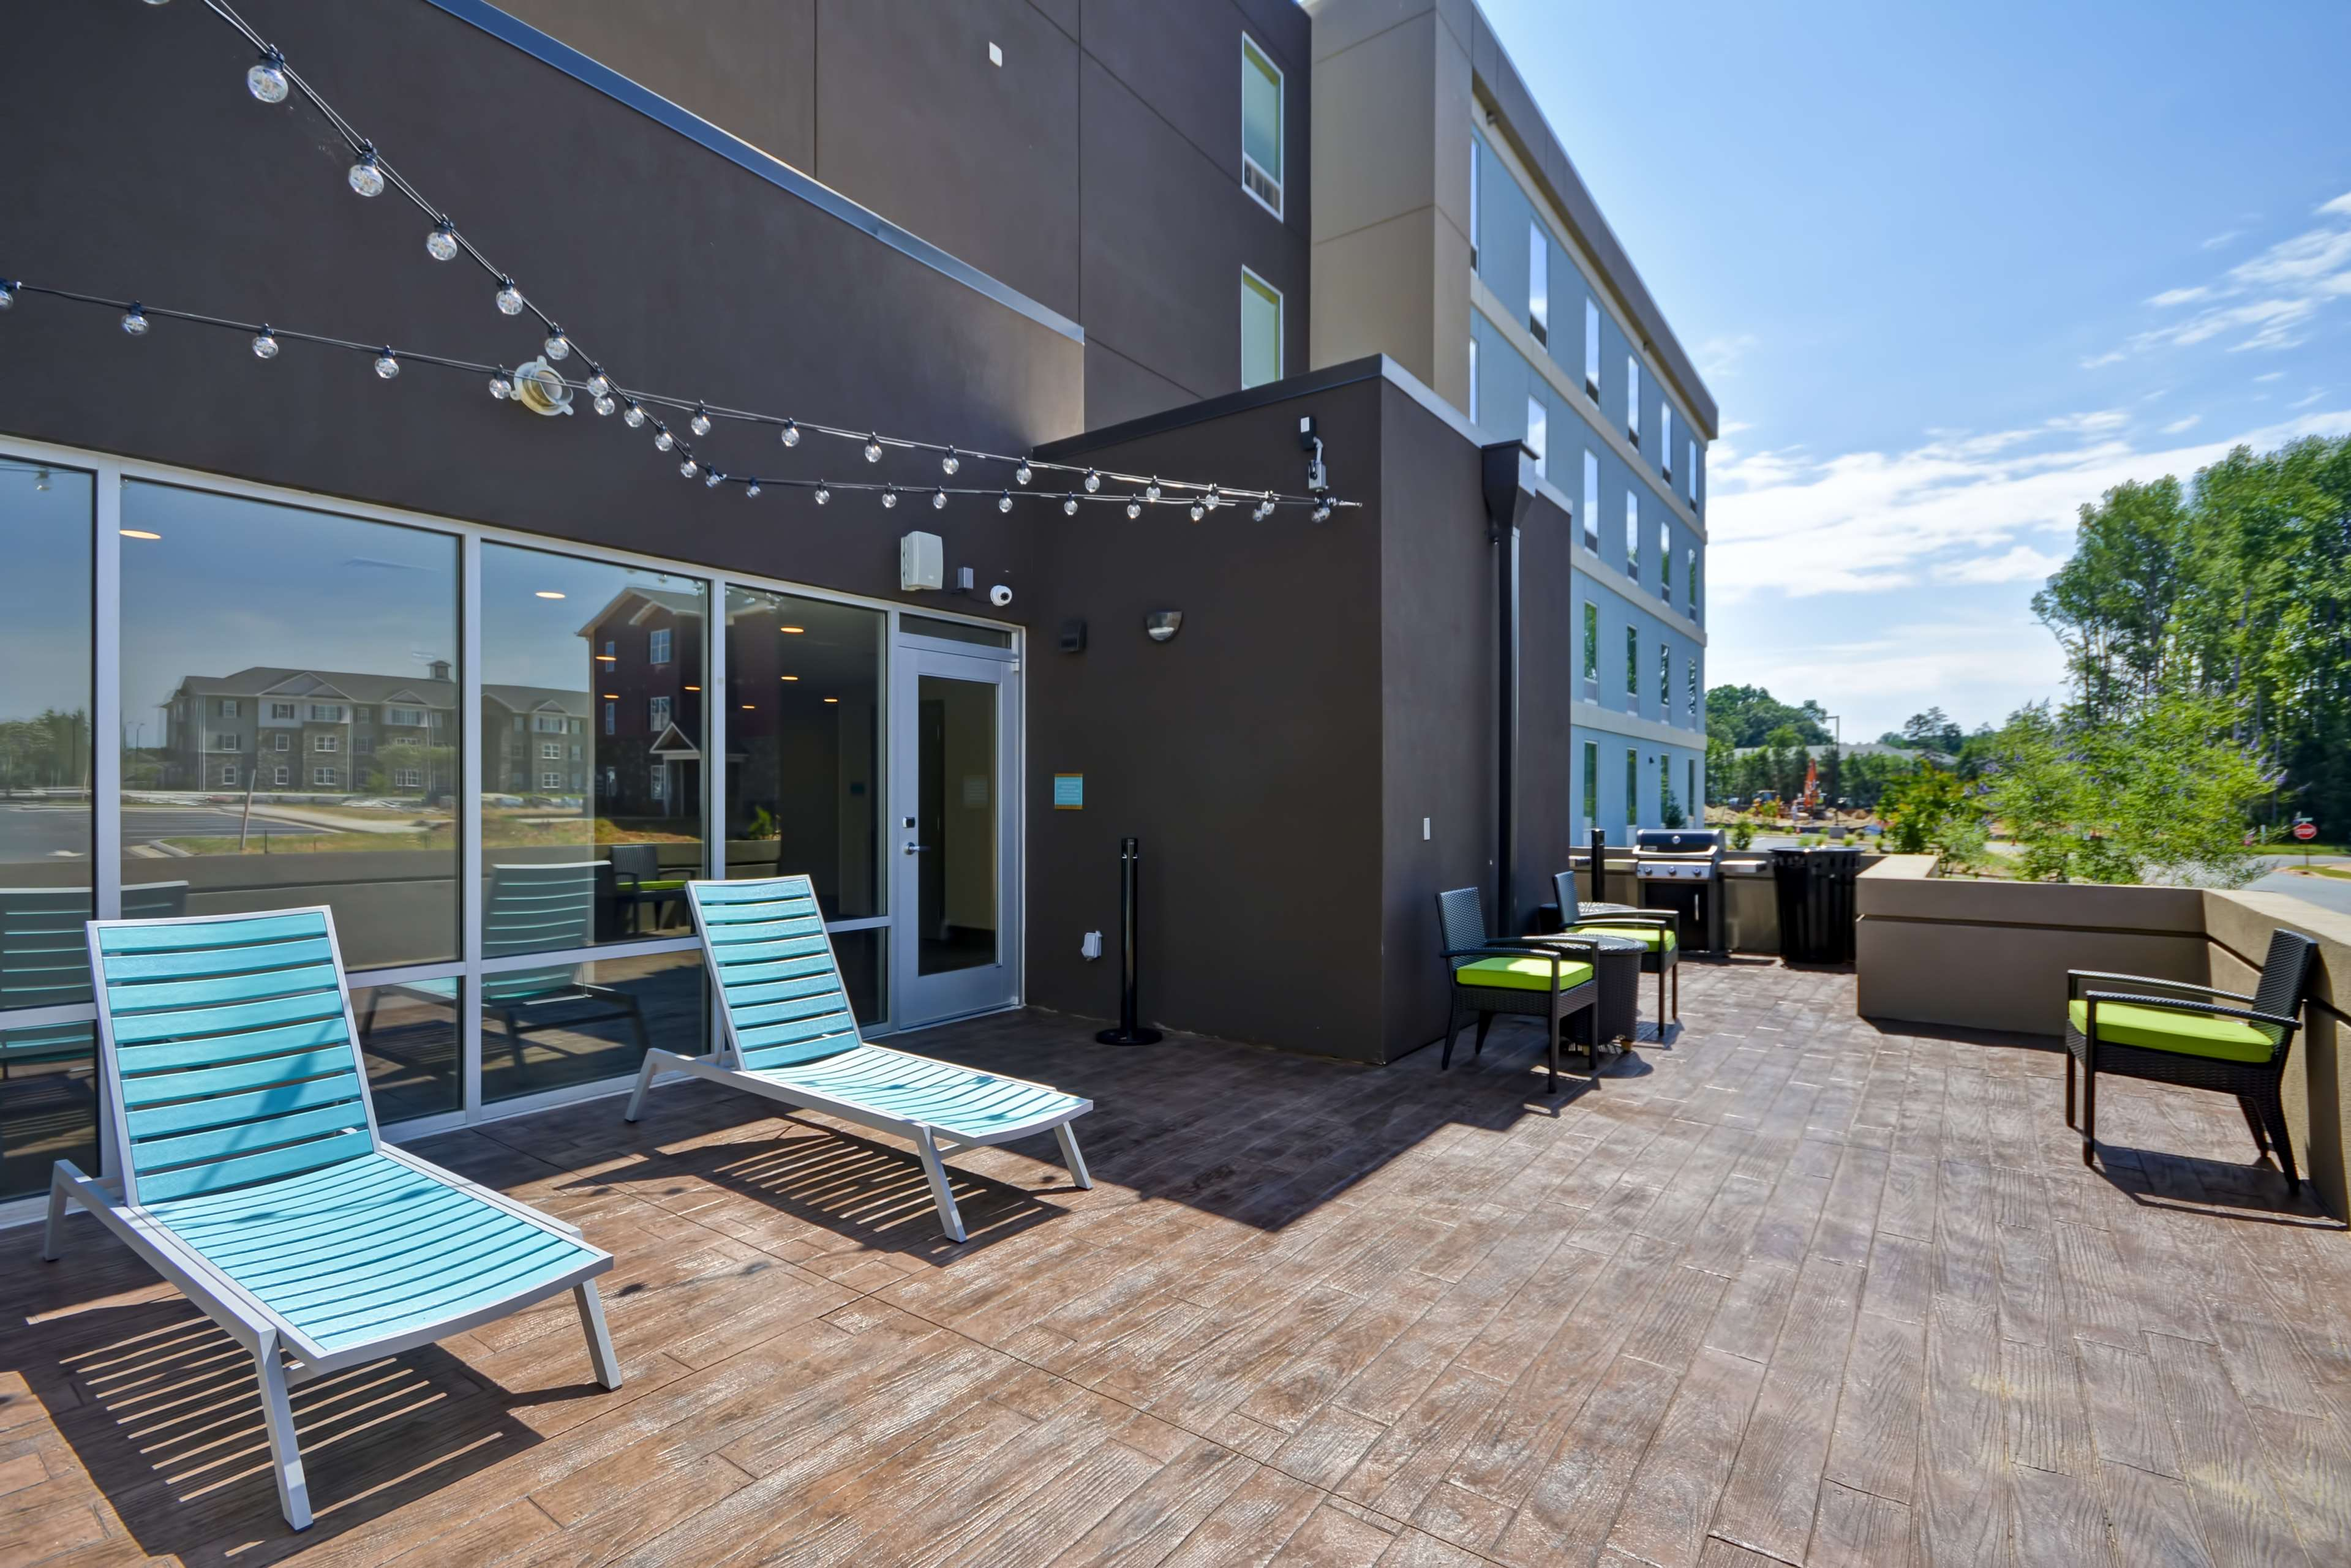 Home2 Suites by Hilton Rock Hill image 0